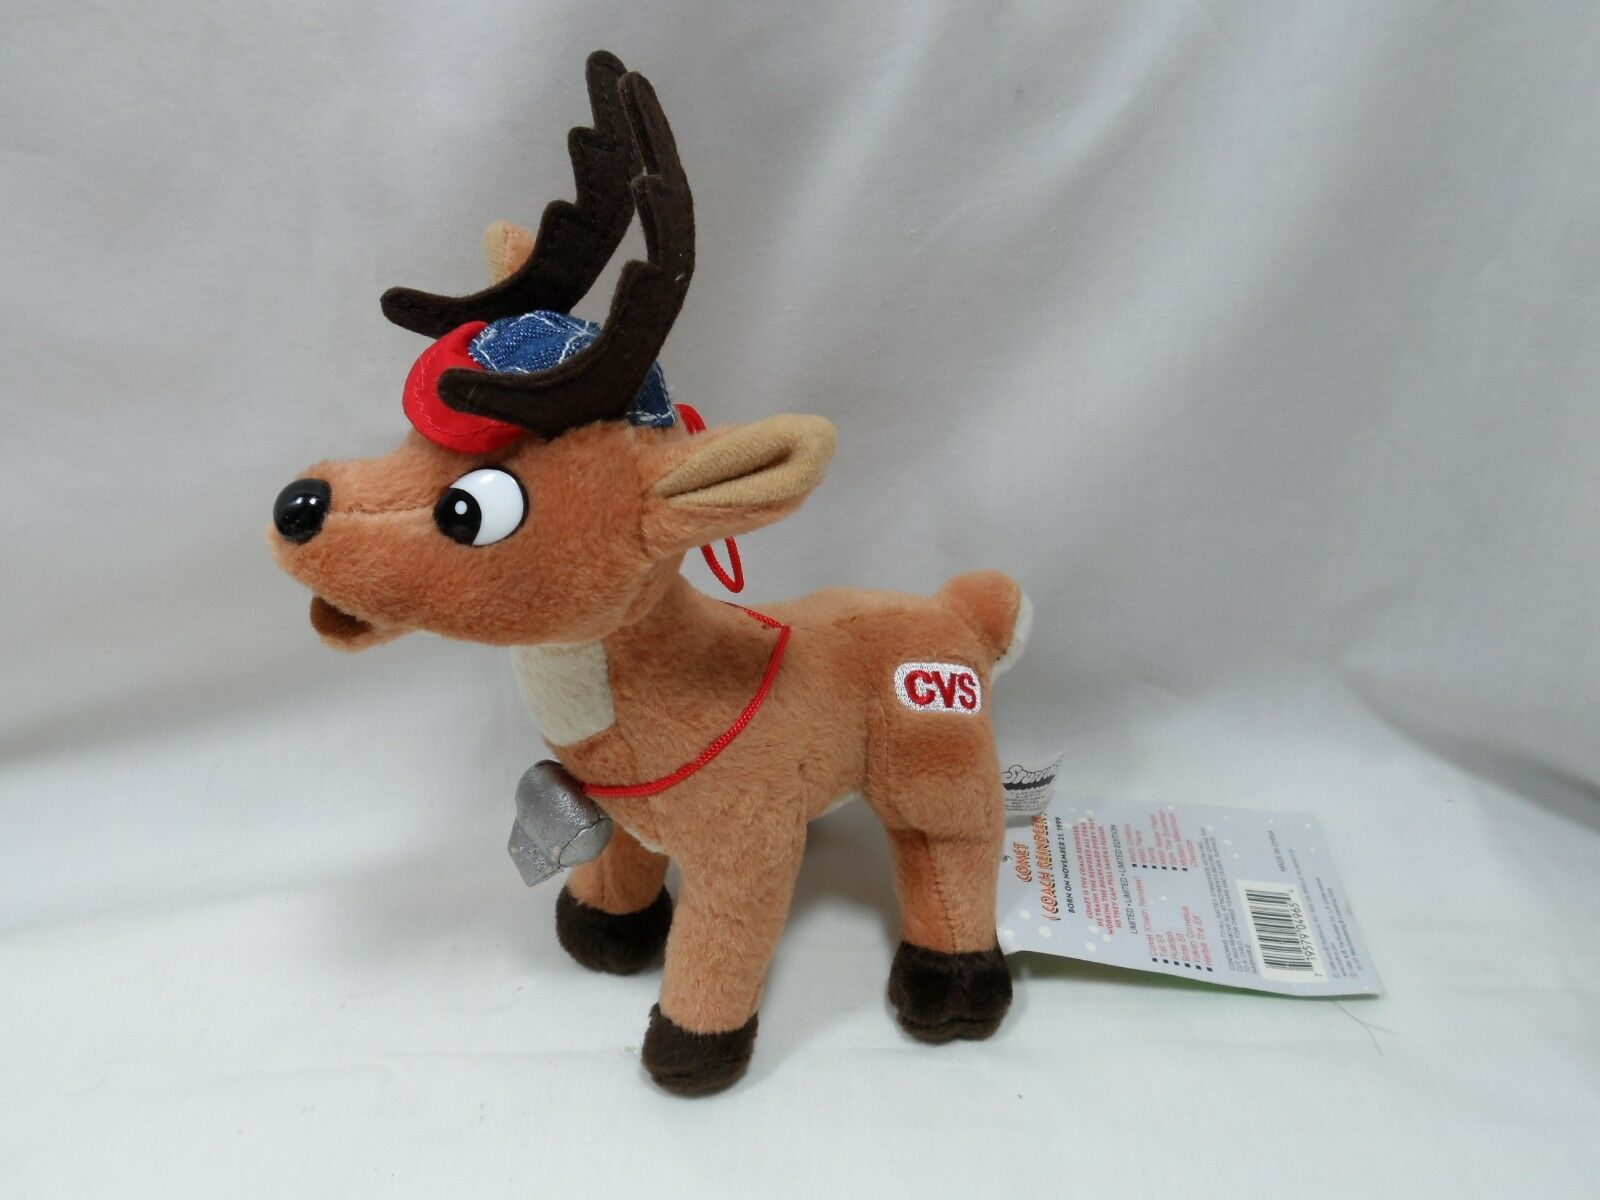 1999 1999 1999 6  Misfit Toys Comet Rudolph the Red Nosed Reindeer New w  Tags 01a07a